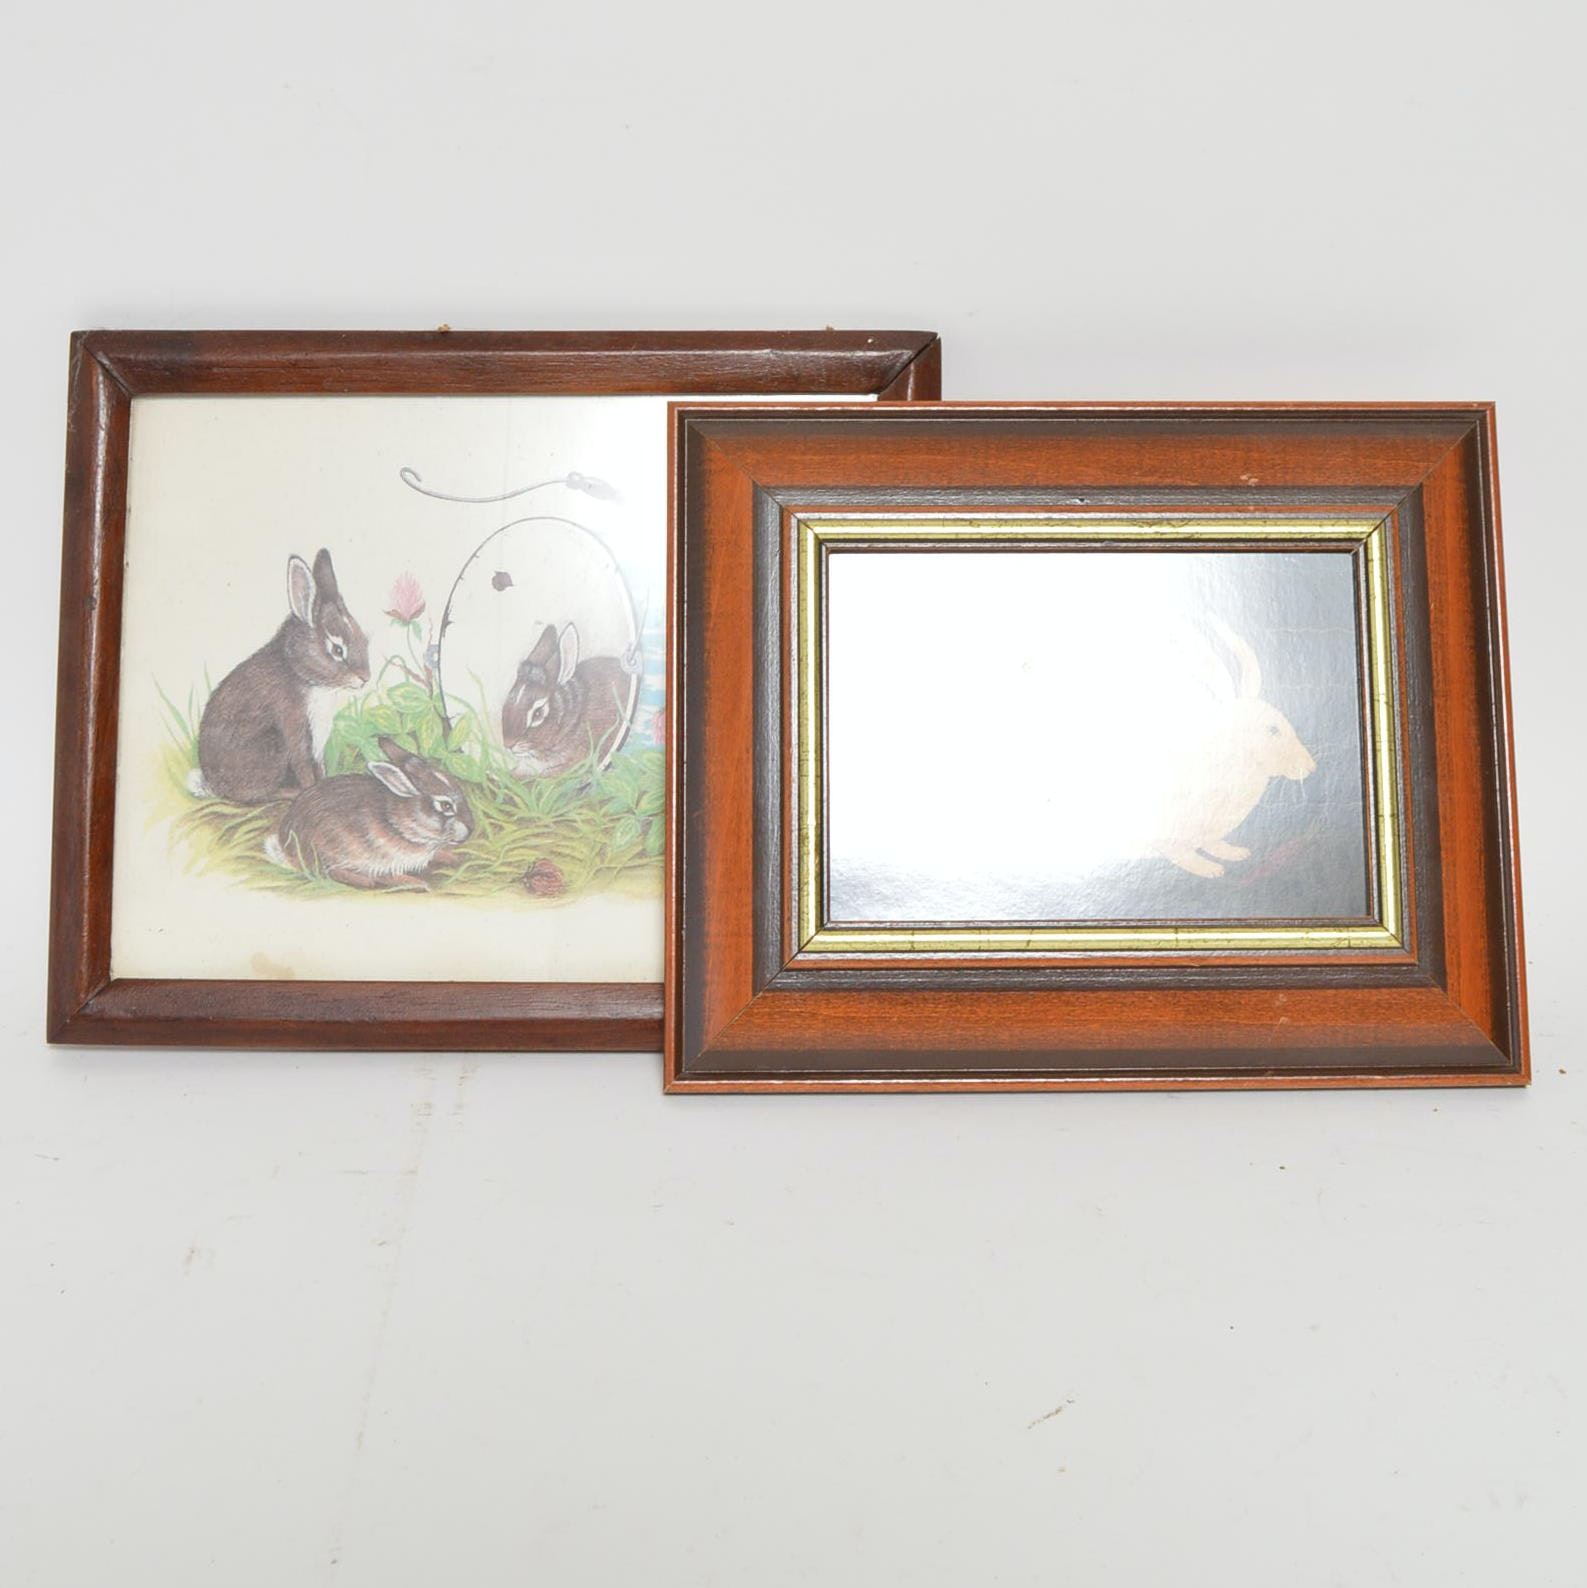 Offset Lithographs of Rabbits by Wilma B. Vincent and W. Kimbele